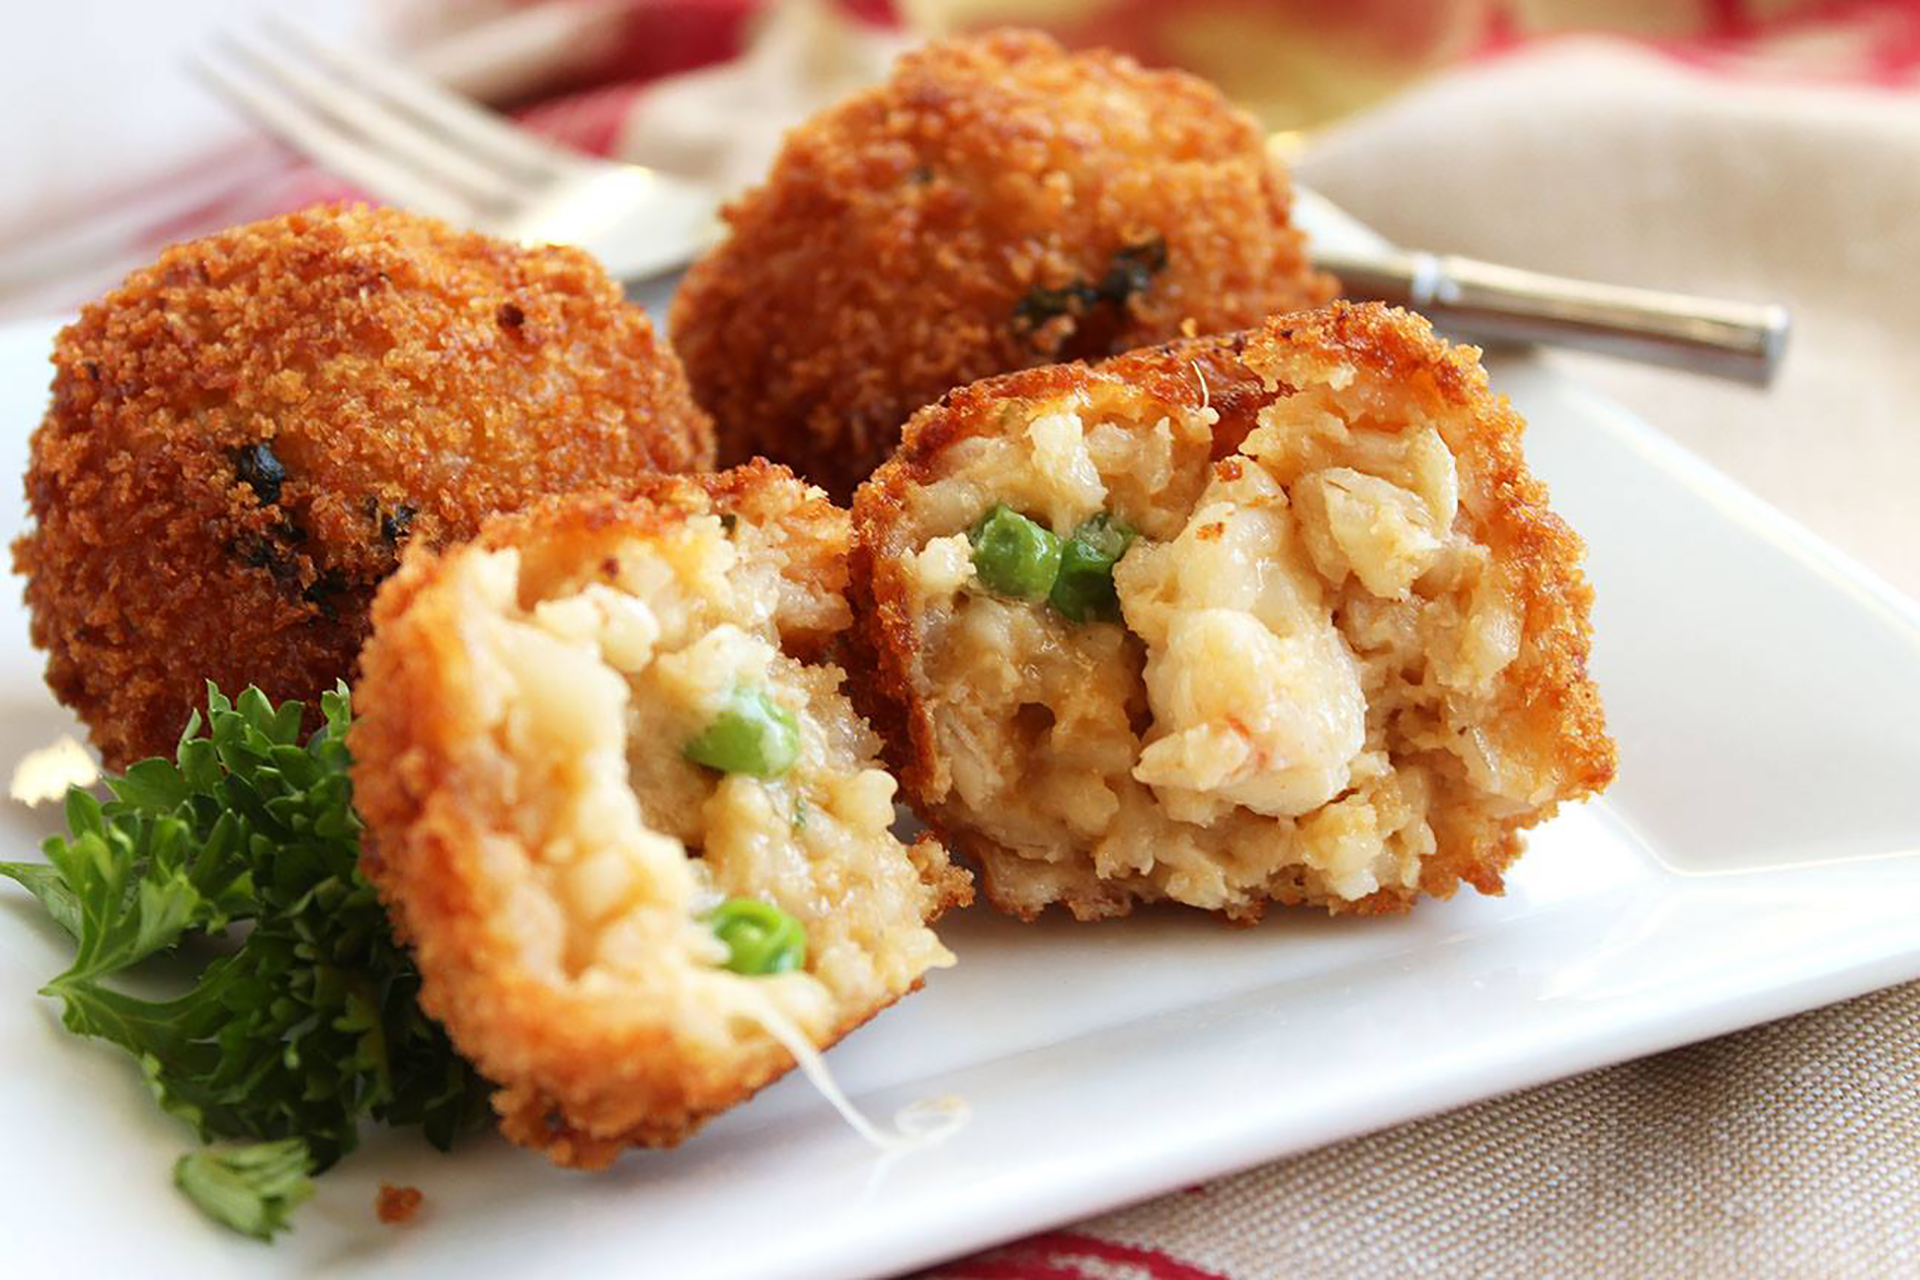 http://thesuburbansoapbox.com/2014/12/30/easy-lobster-arancini/